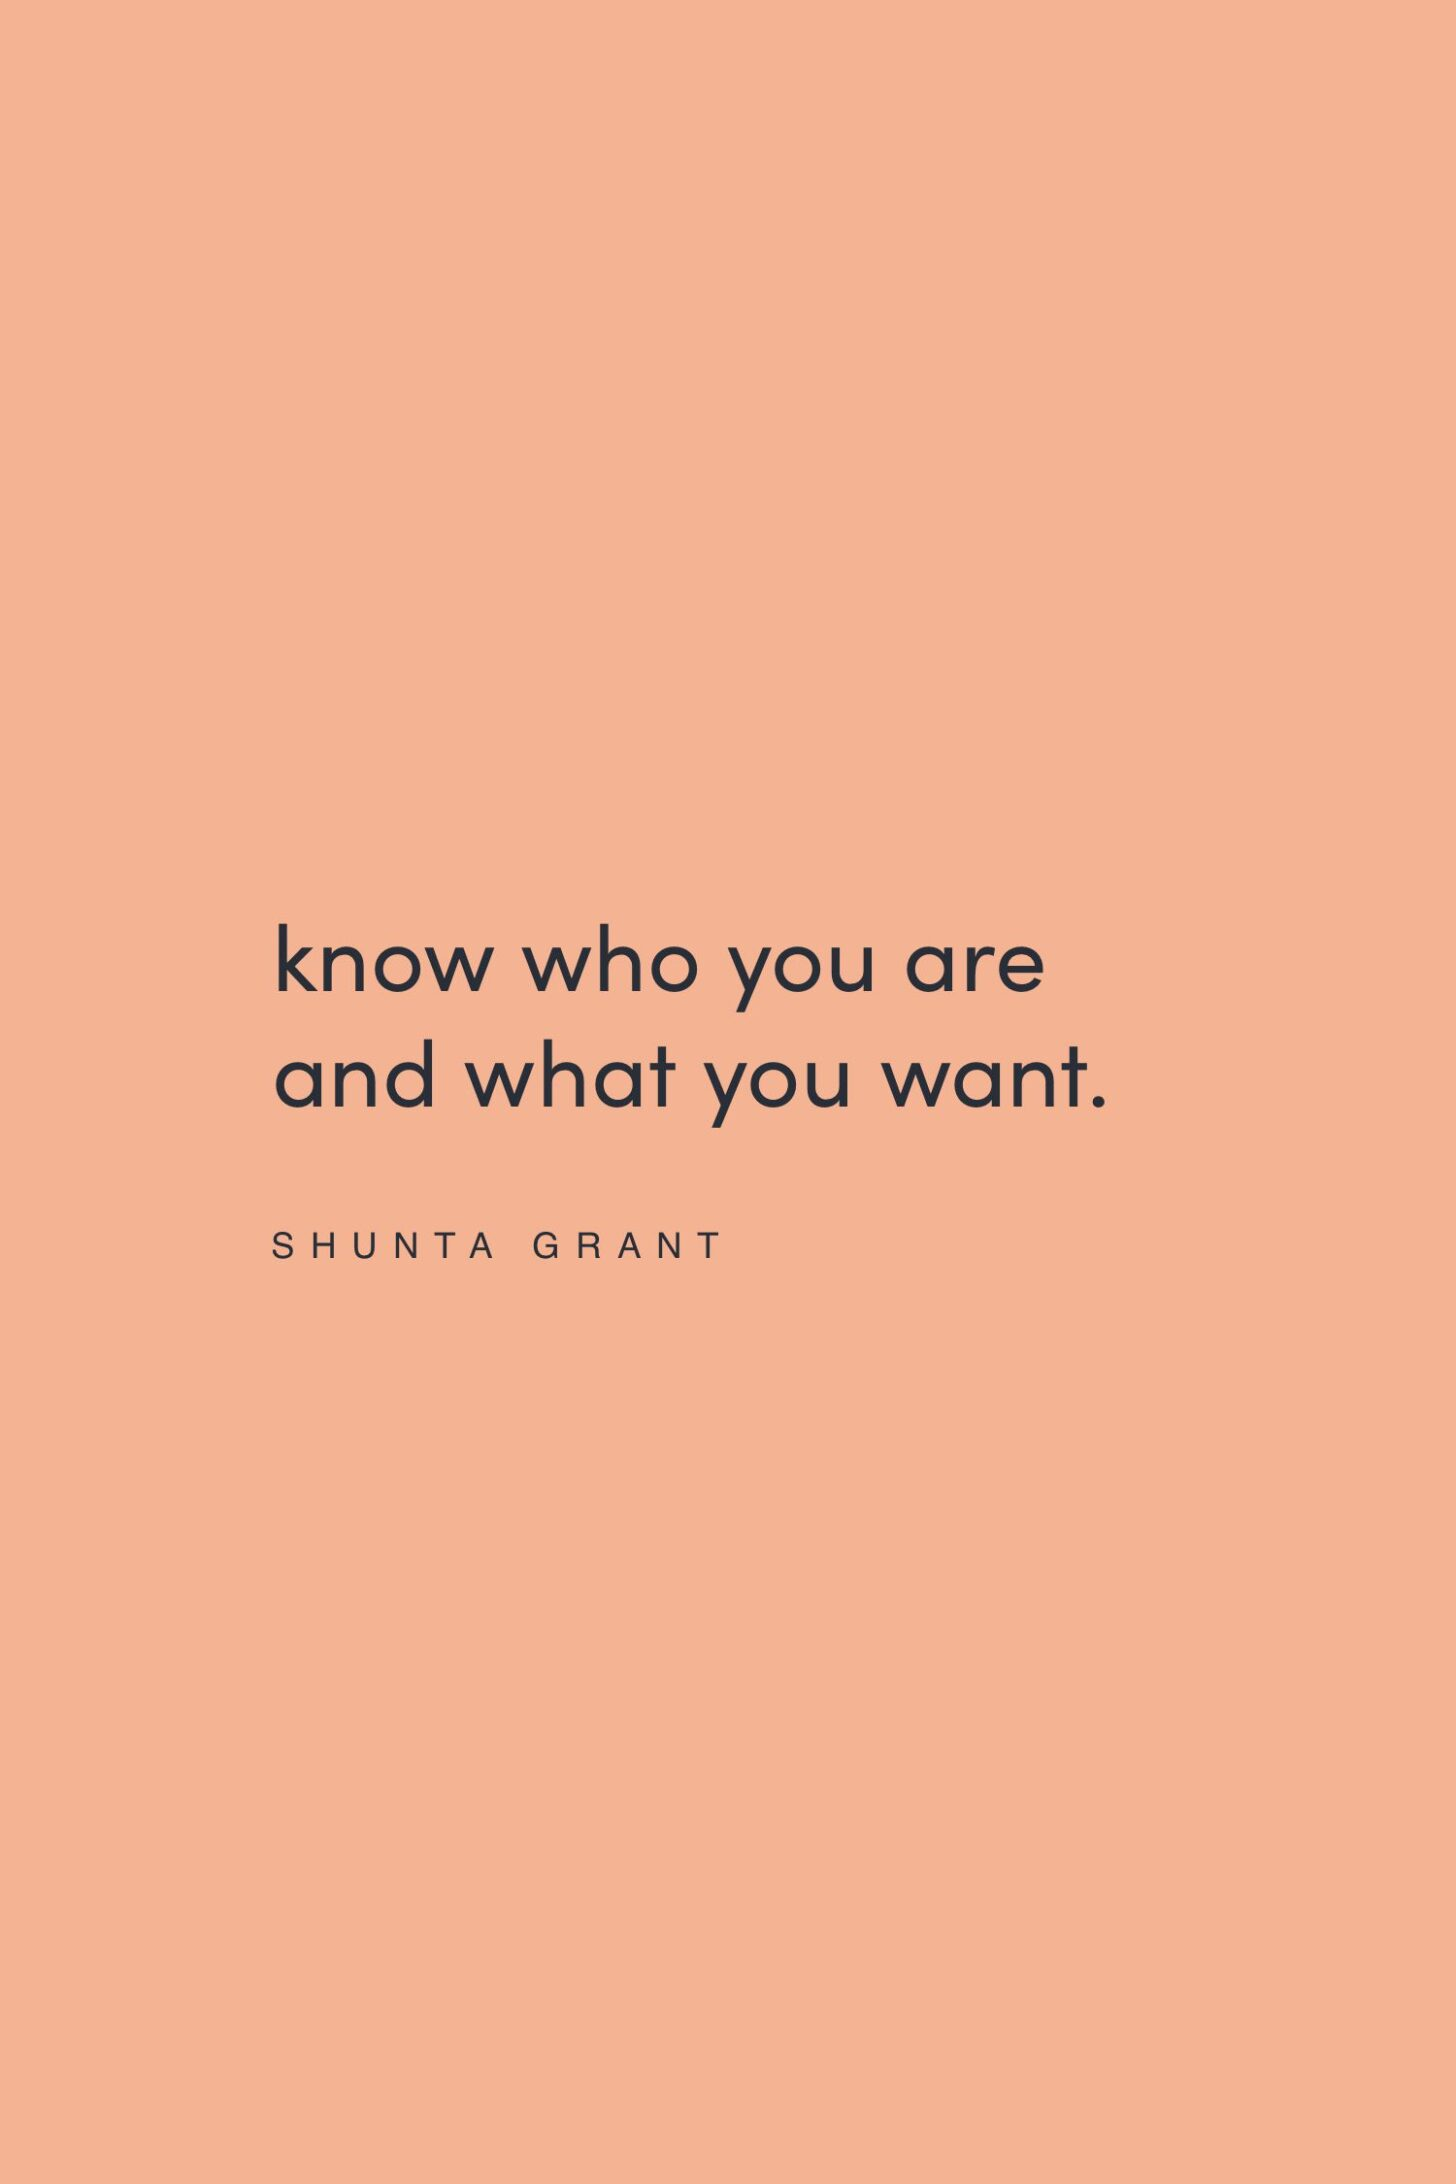 Quote from Shunta Grant